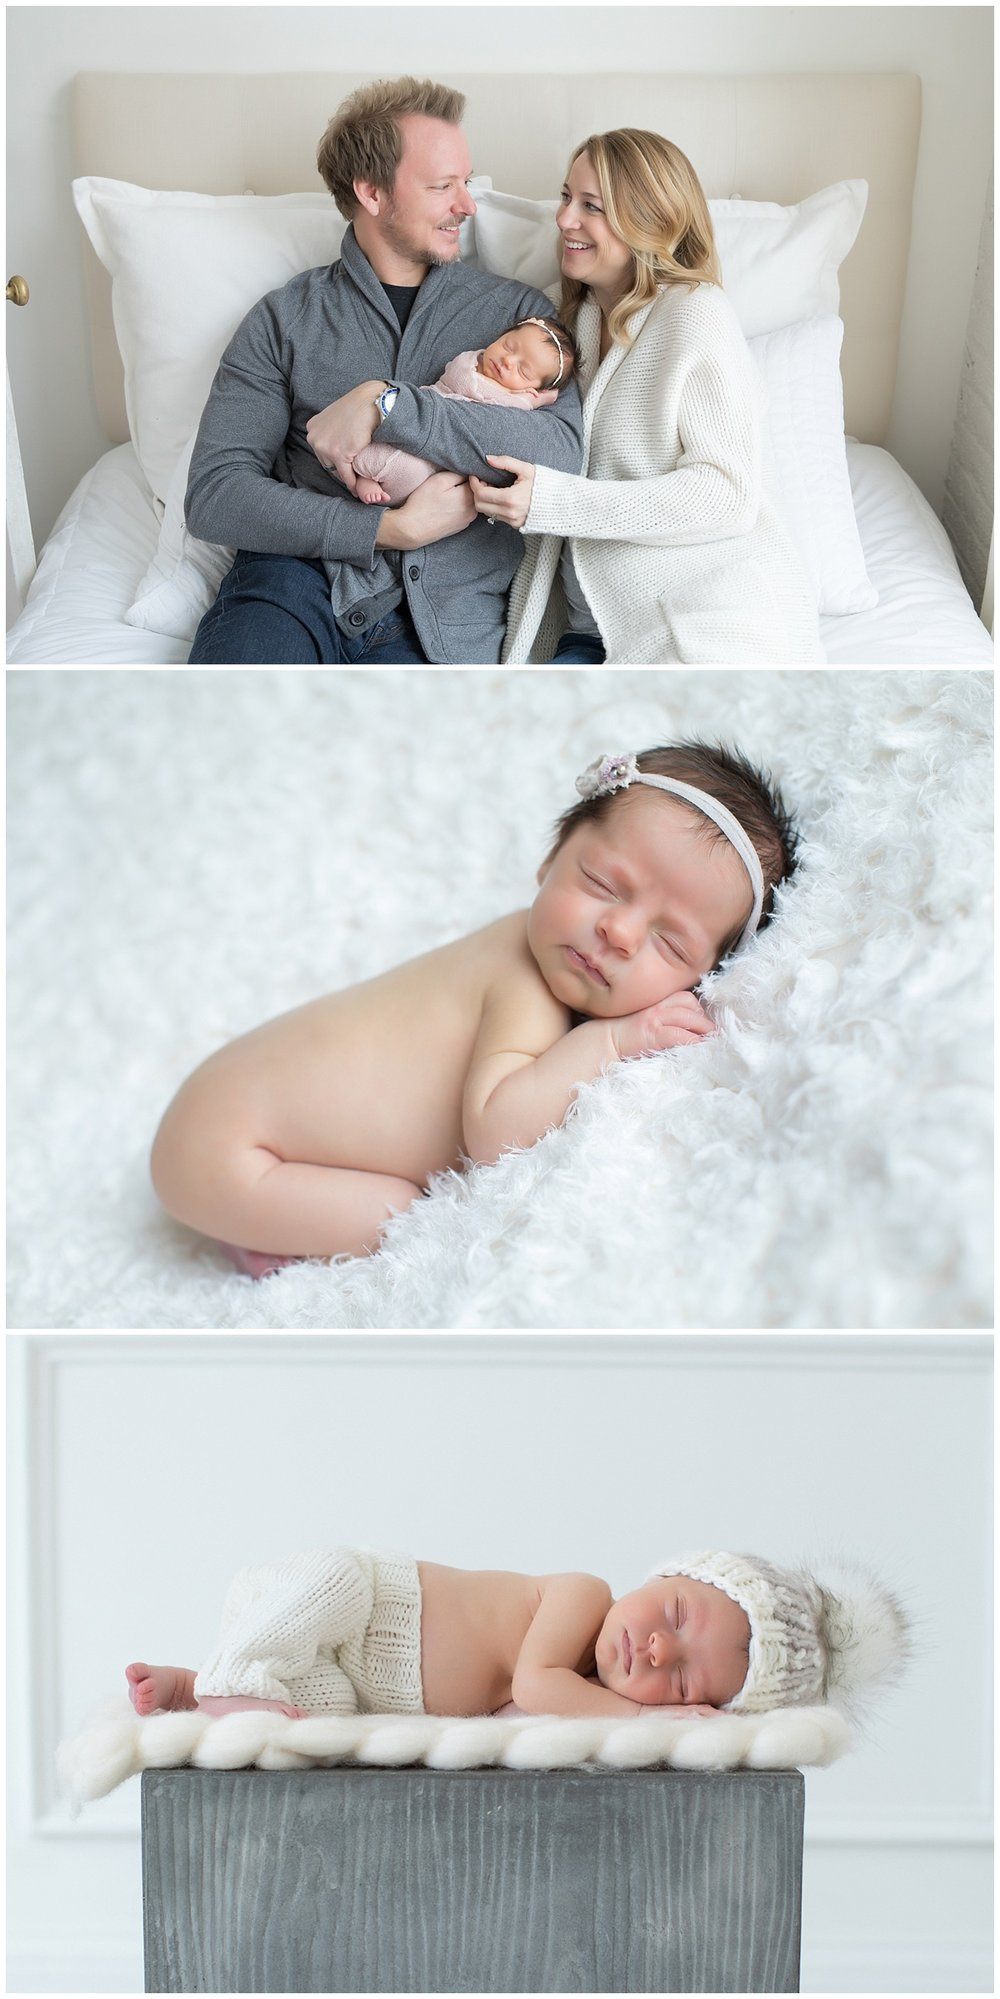 minneapolis_minnesota_newborn_family_lifestyle_portrait_session_2.jpg